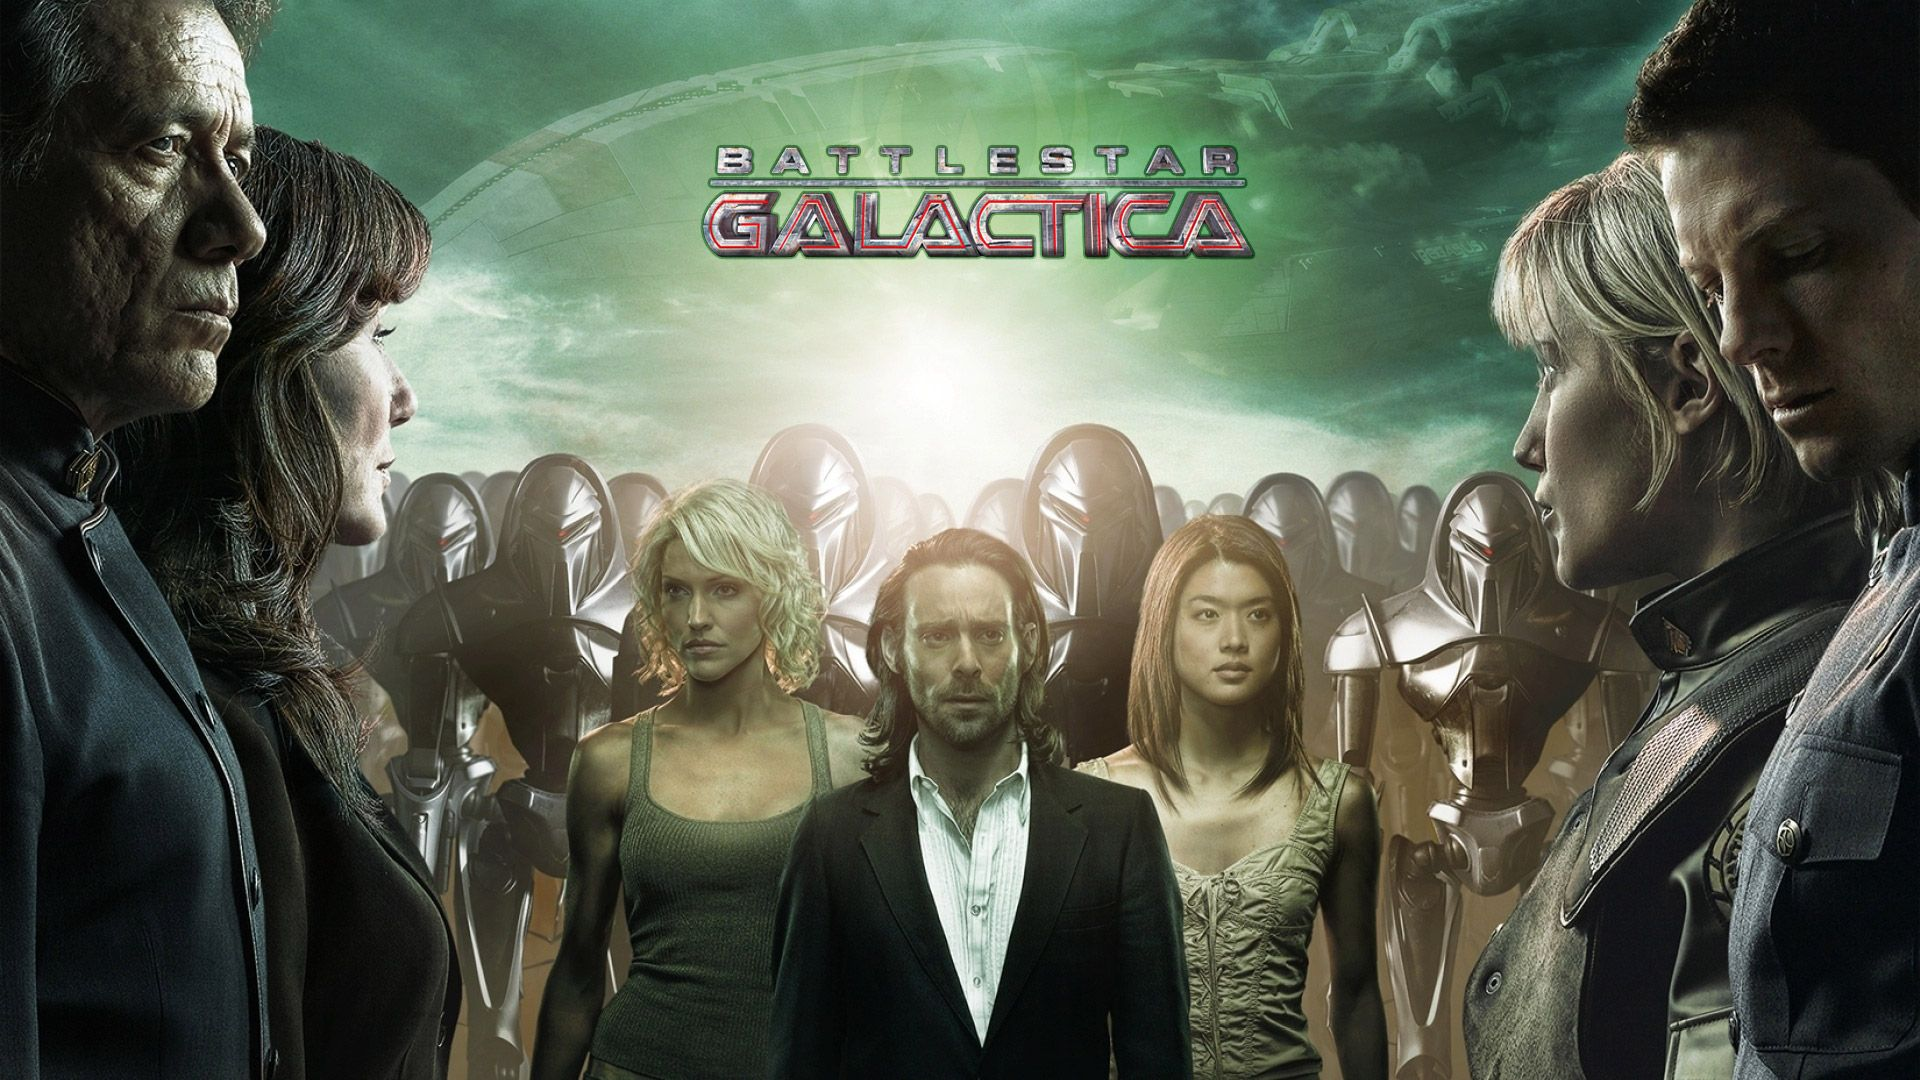 Battlestar Galactica (2003) Pics, TV Show Collection